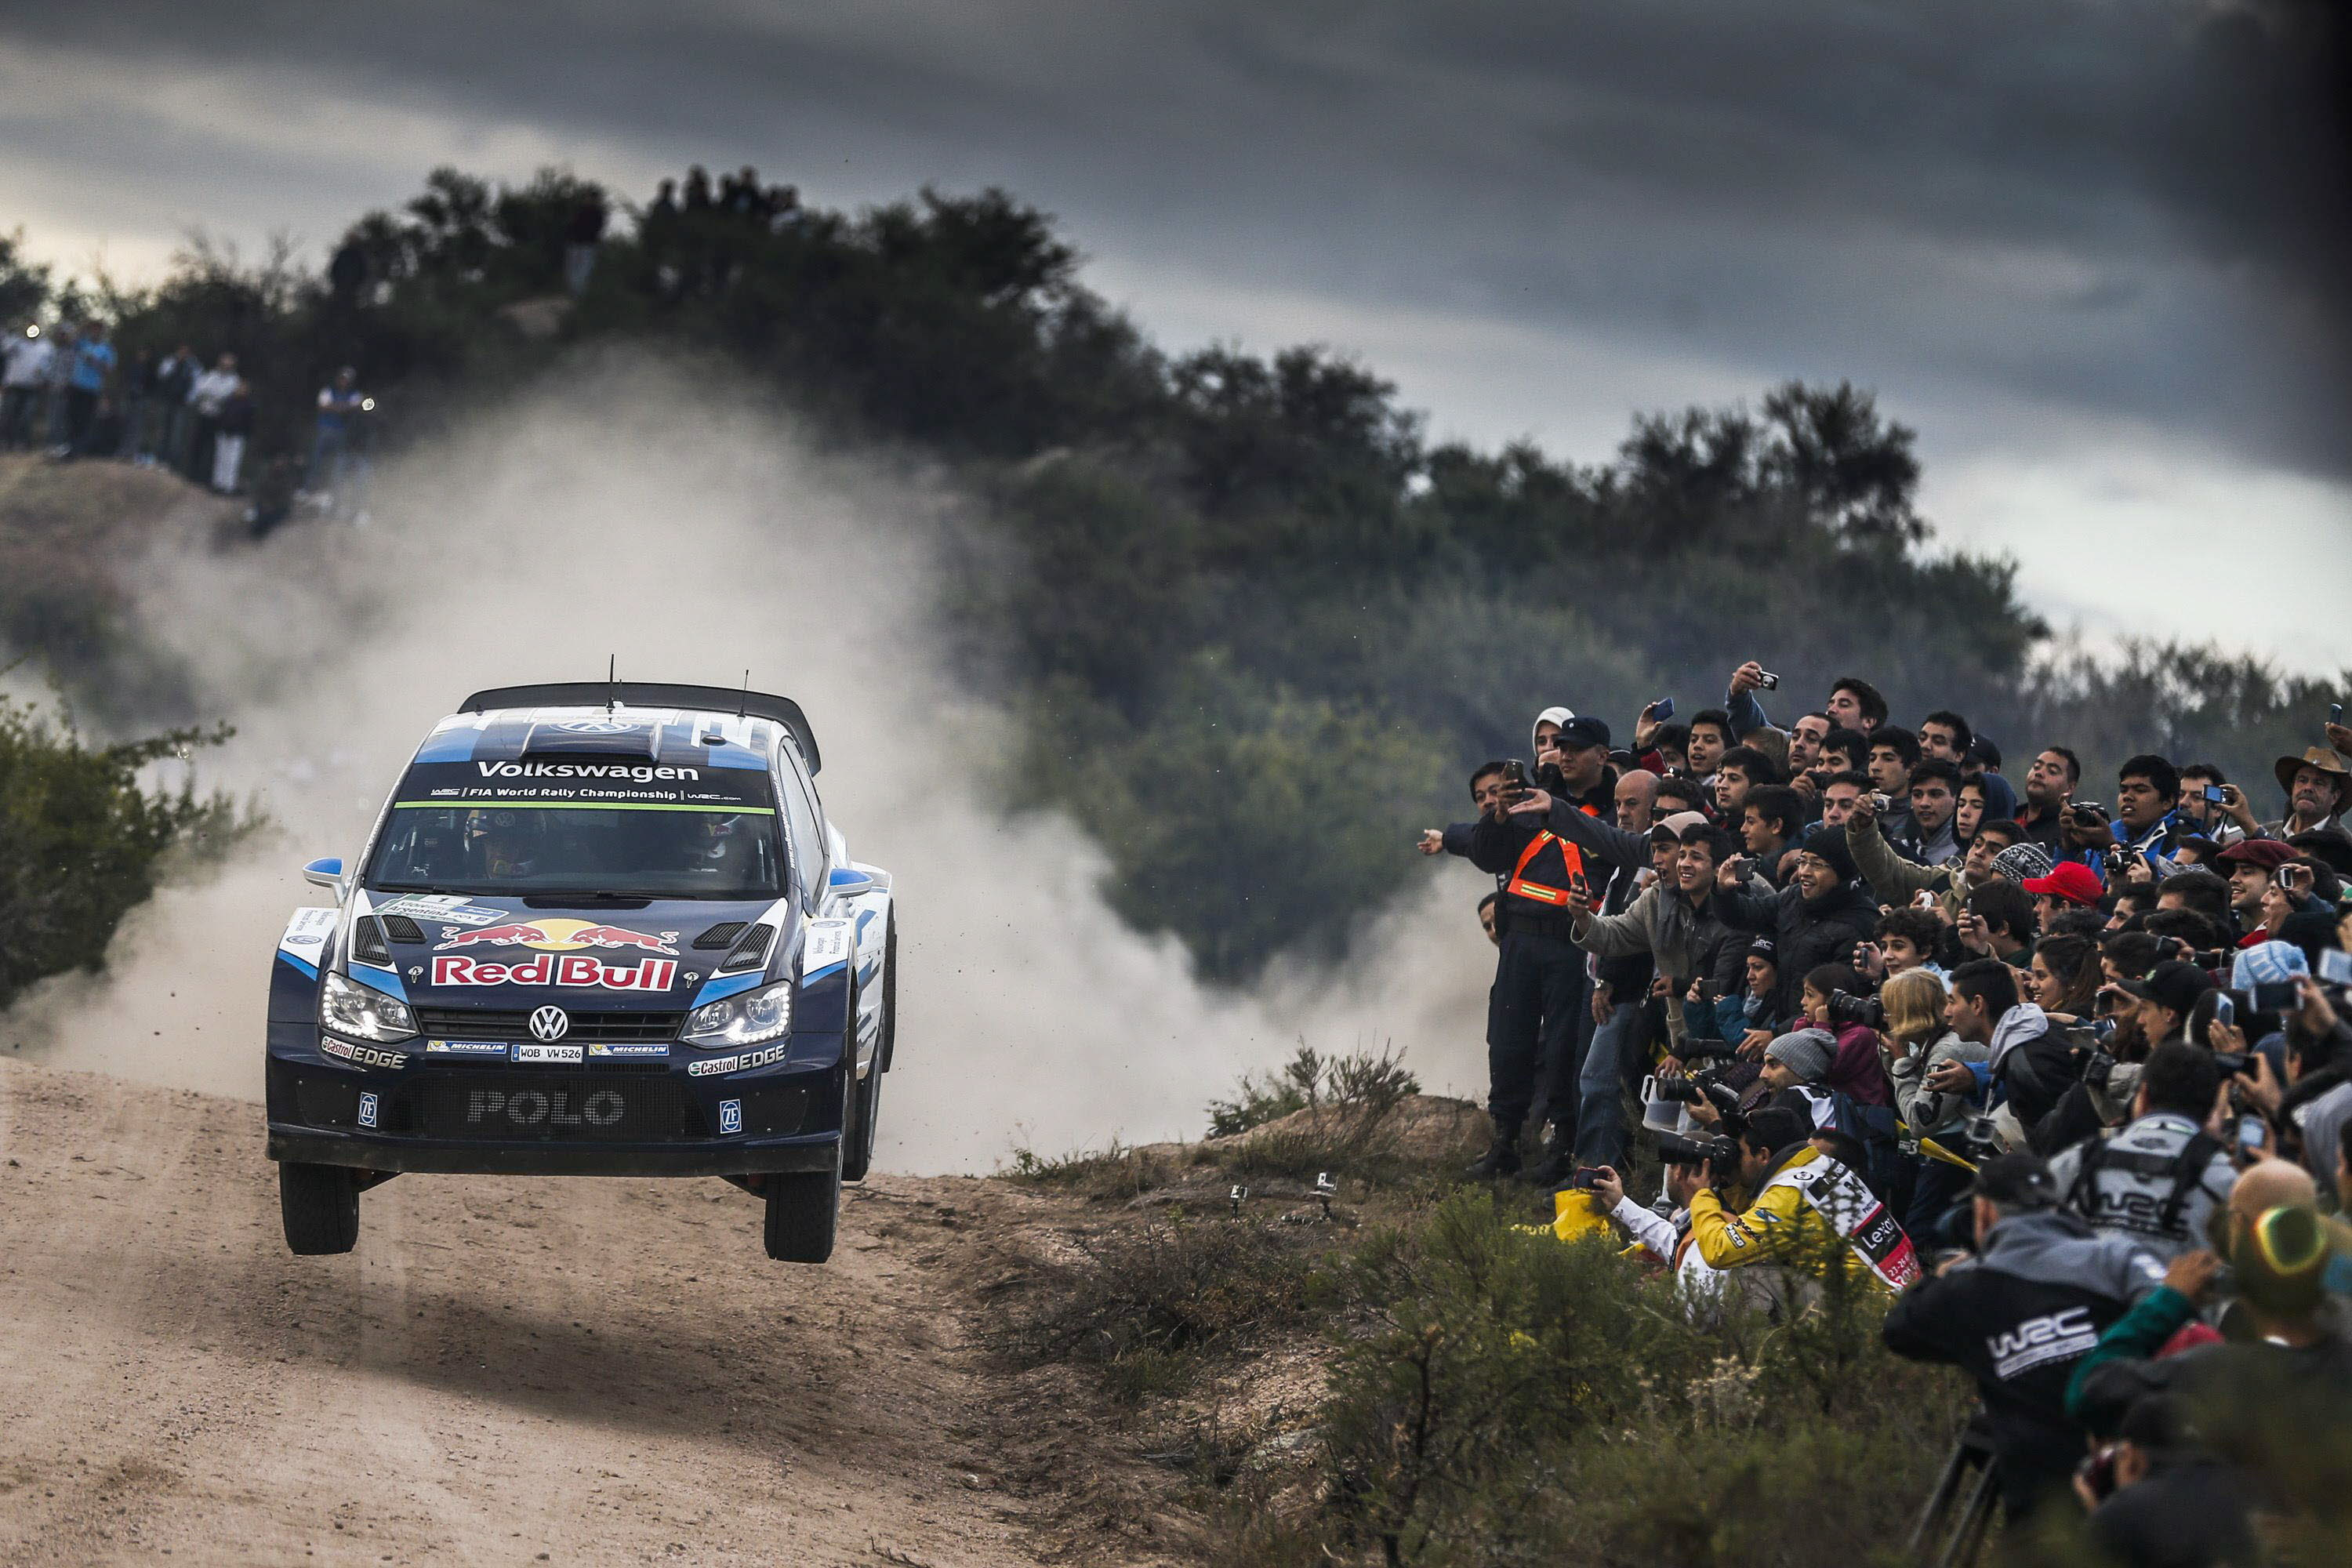 COR08. Cordoba (Argentina), 25/04/2015.- Reigning world champion rally driver Sebastien Ogier of France driving his Volkswagen Polo R WRC during Day 2 of XION Rally Argentina 2015, Villa Carlos Paz, Cordoba, Argentina, April 25, 2015. (Francia) EFE/EPA/STR